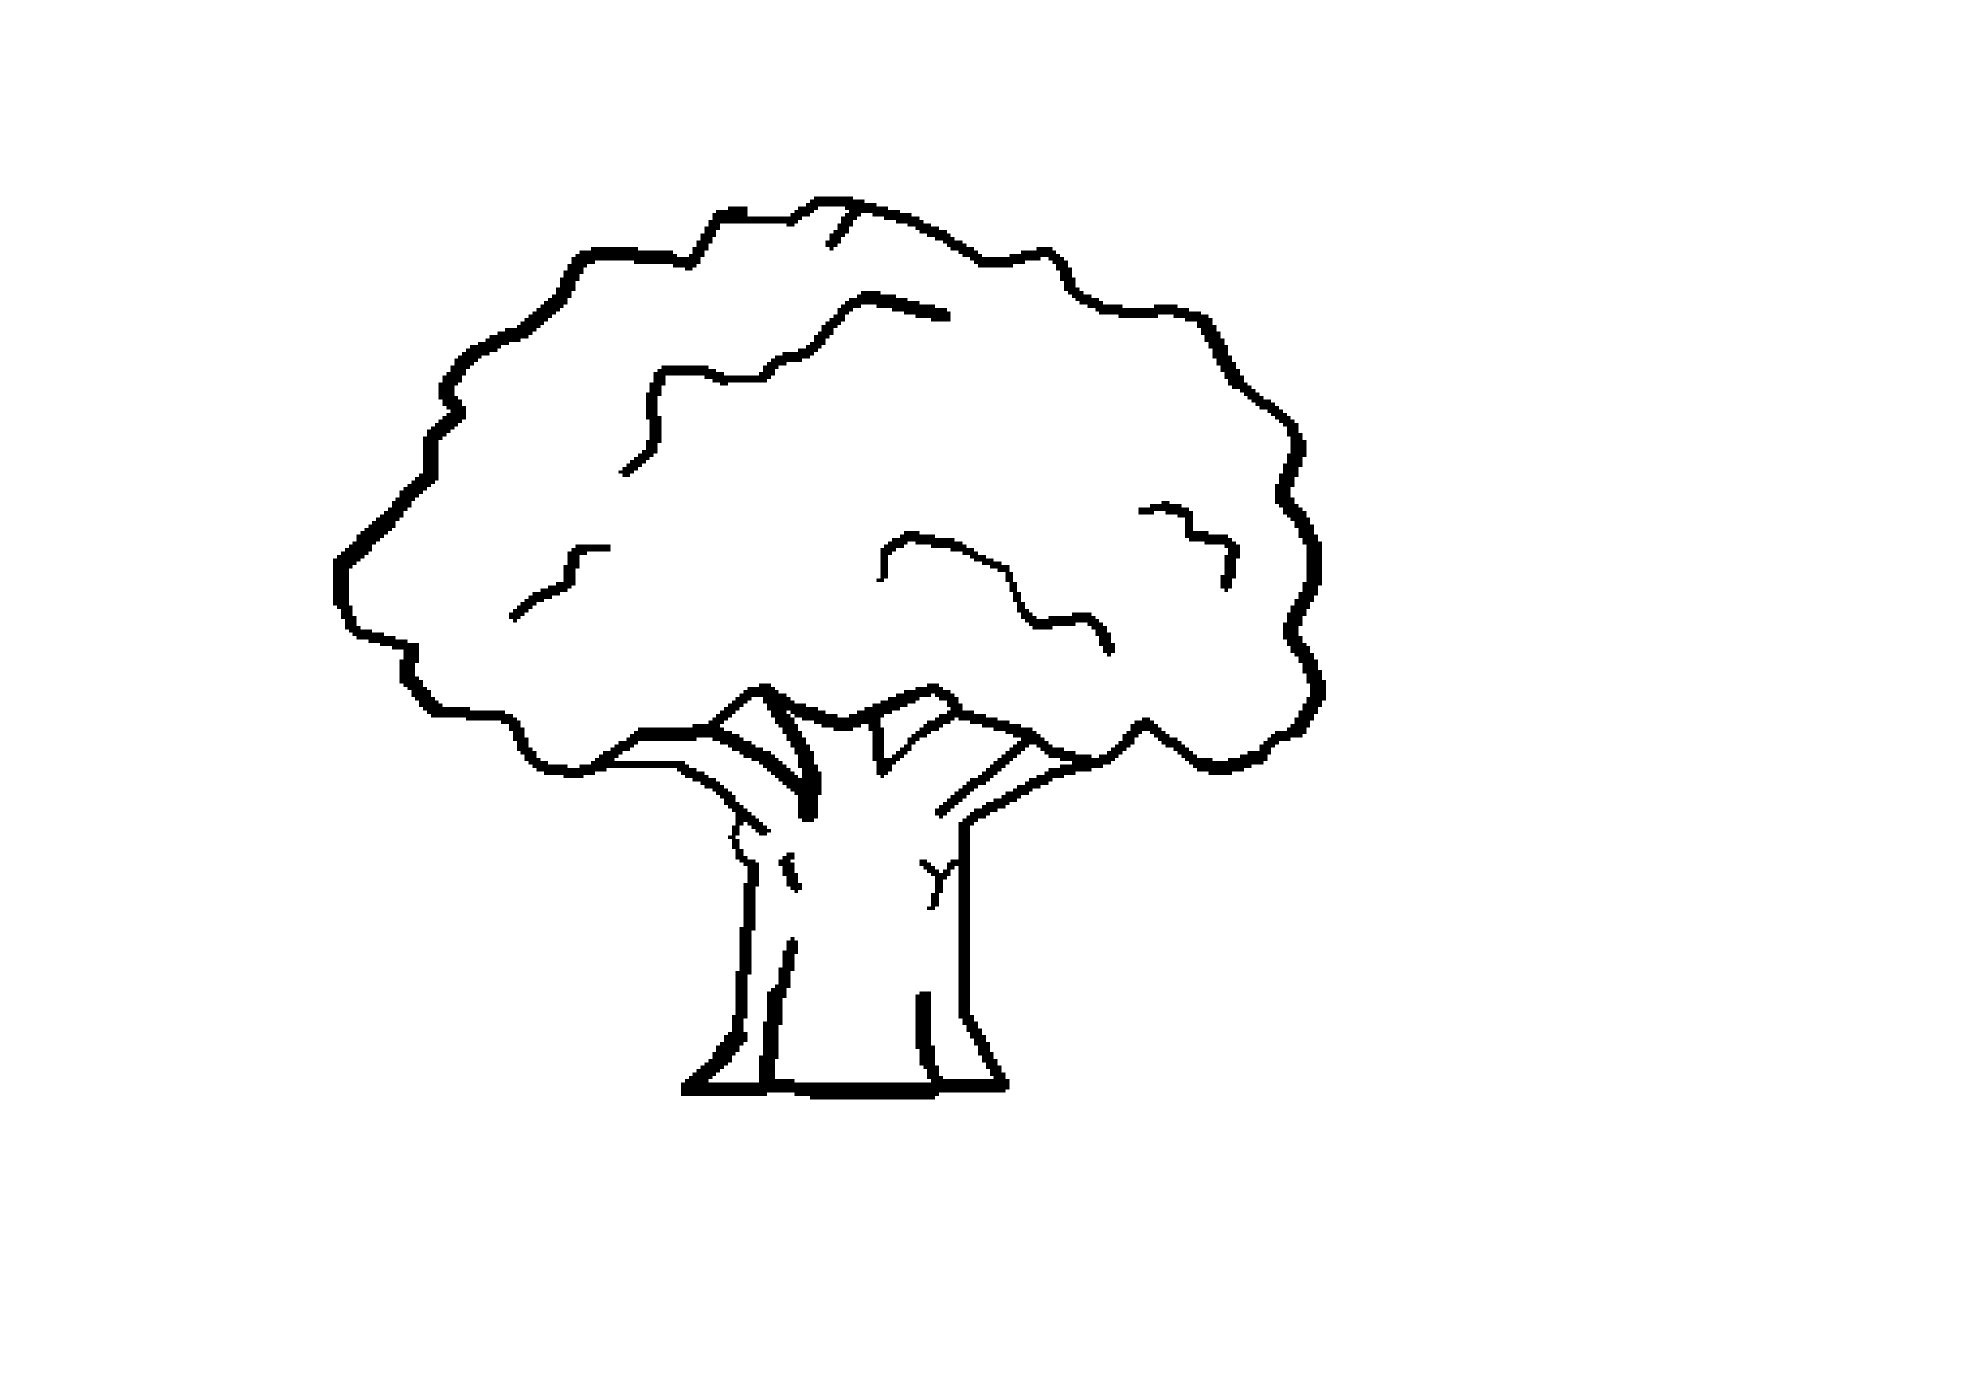 Line Art Graphics : Line art tree clipart best